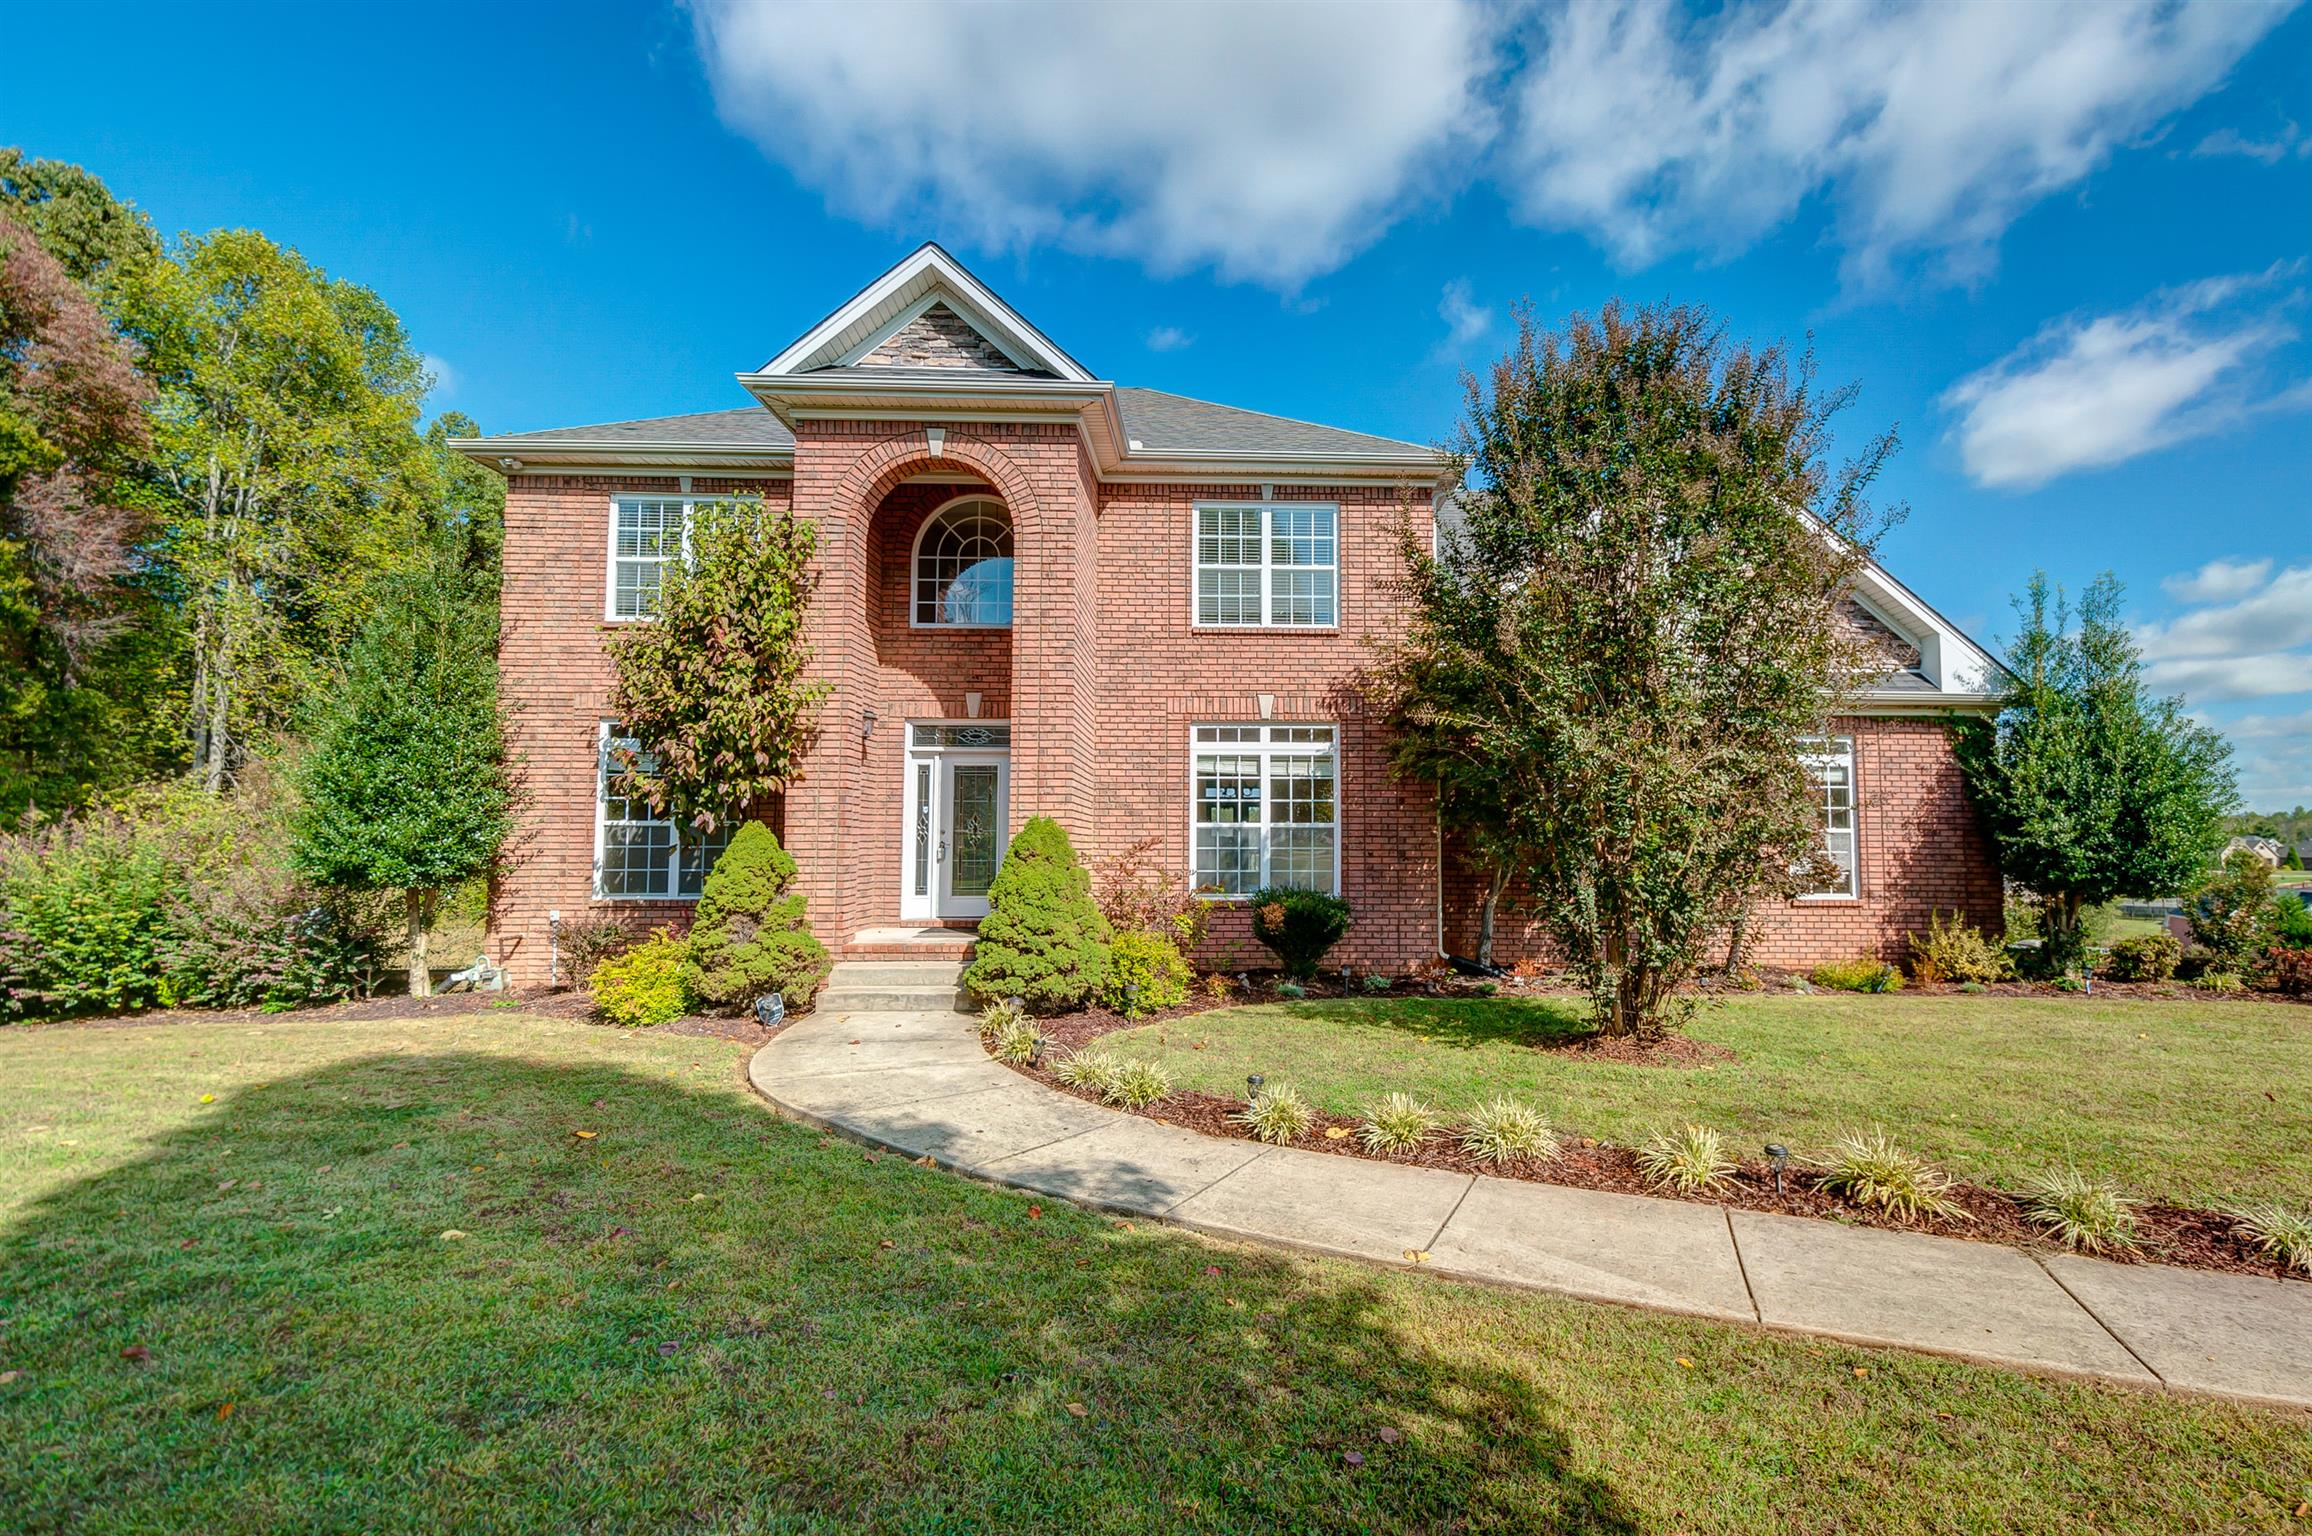 3060 Joey Ct, Pleasant View, TN 37146 - Pleasant View, TN real estate listing